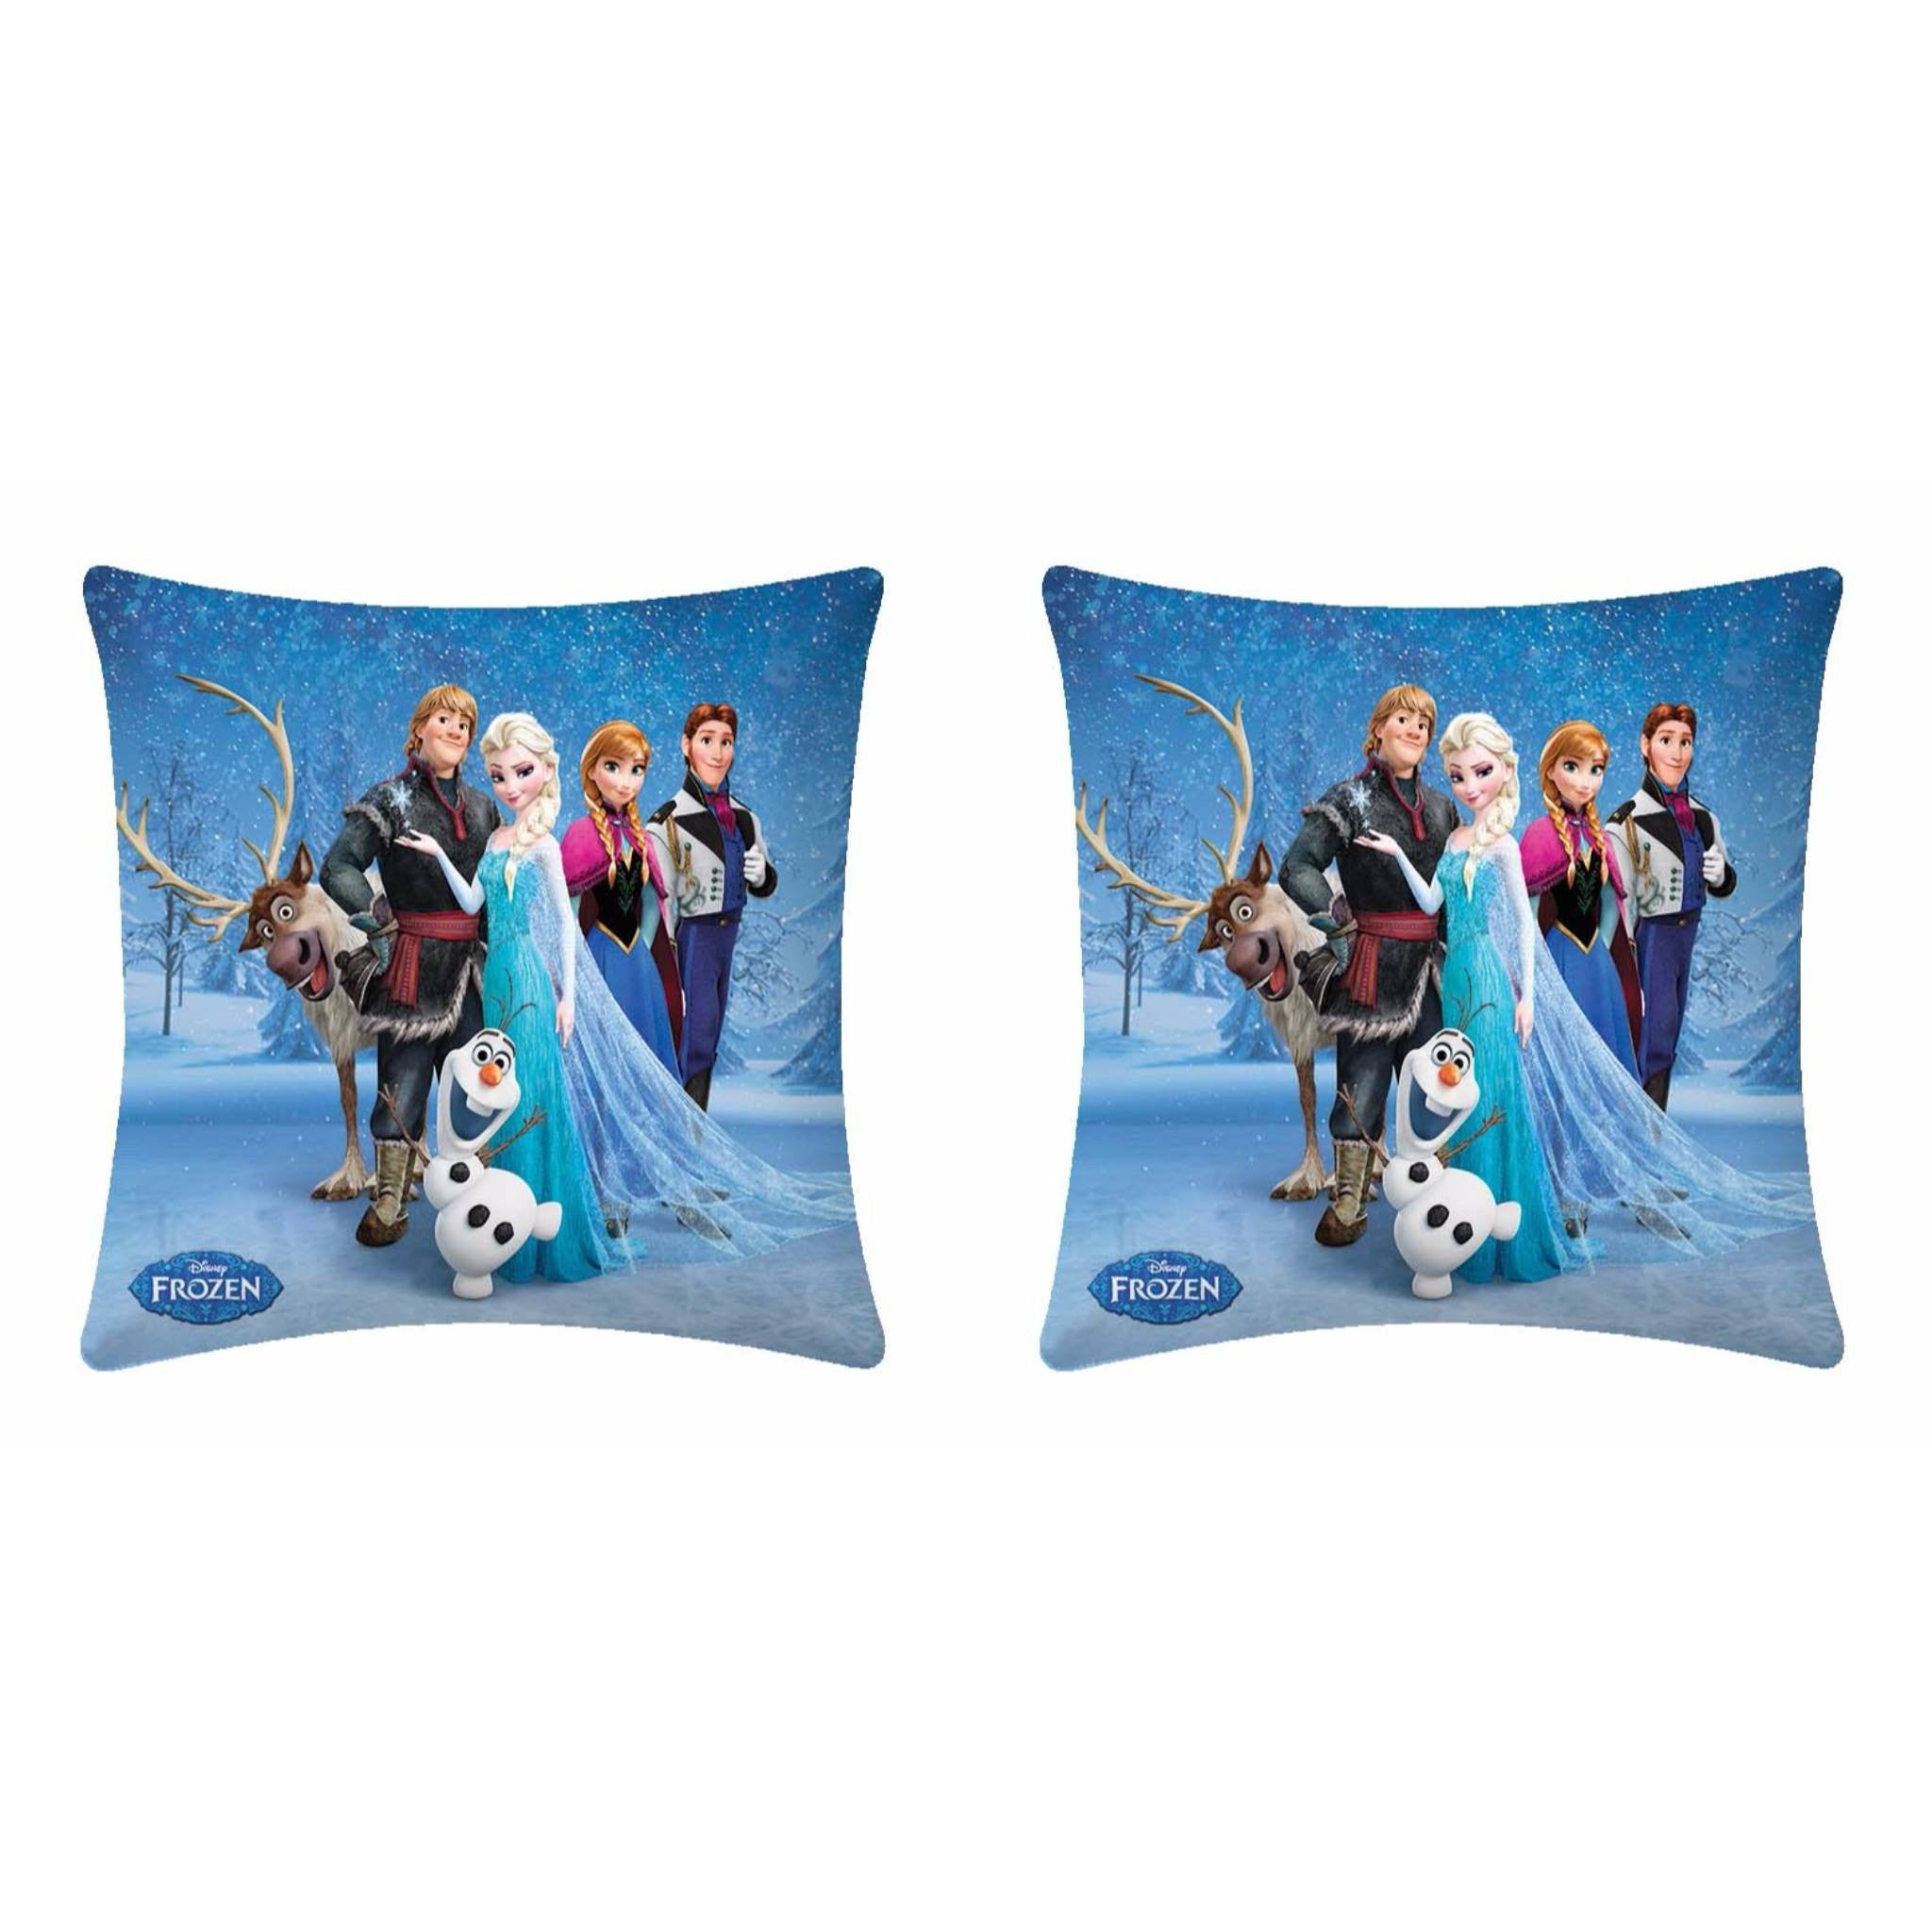 Uber Urban 100% Polyester Filled Disney Cartoon Cushion- 1 piece pack - Über Urban Cushion